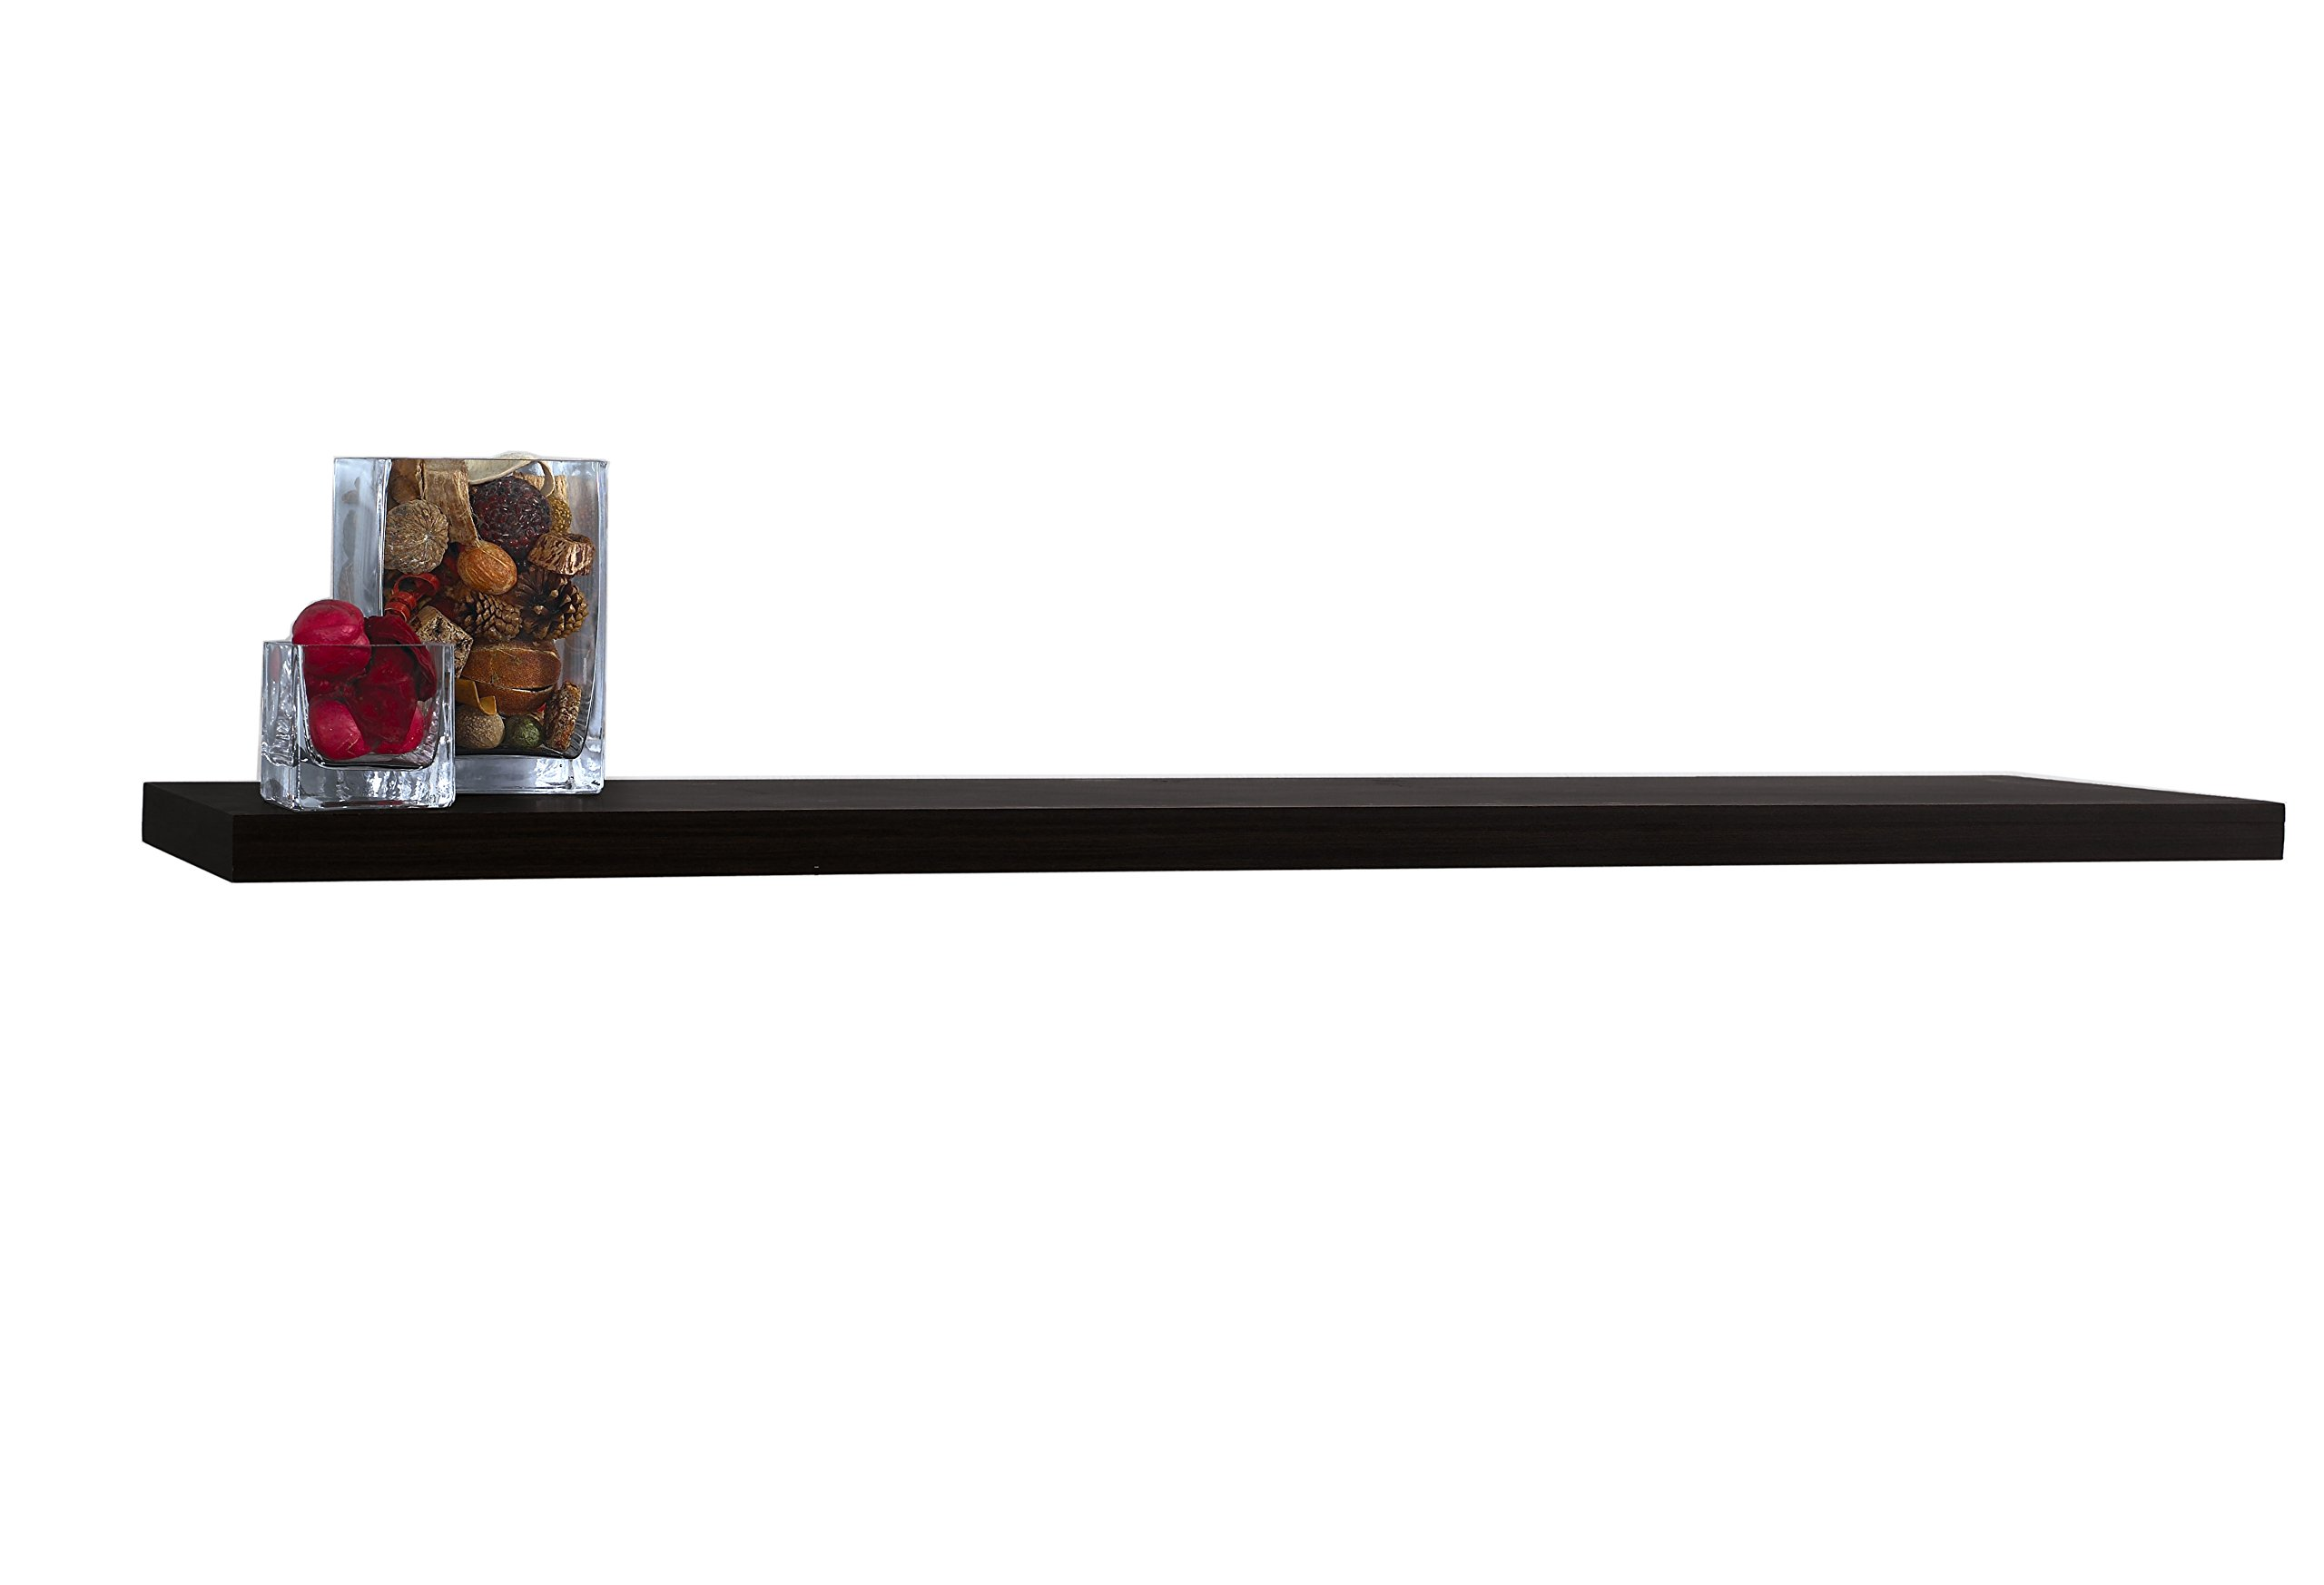 InPlace Shelving 9084674 Slimline Floating Wall Mountable Shelf with Invisible Brackets, Black, 48-Inch Wide by 8-Inch Deep by 1.25-Inch High